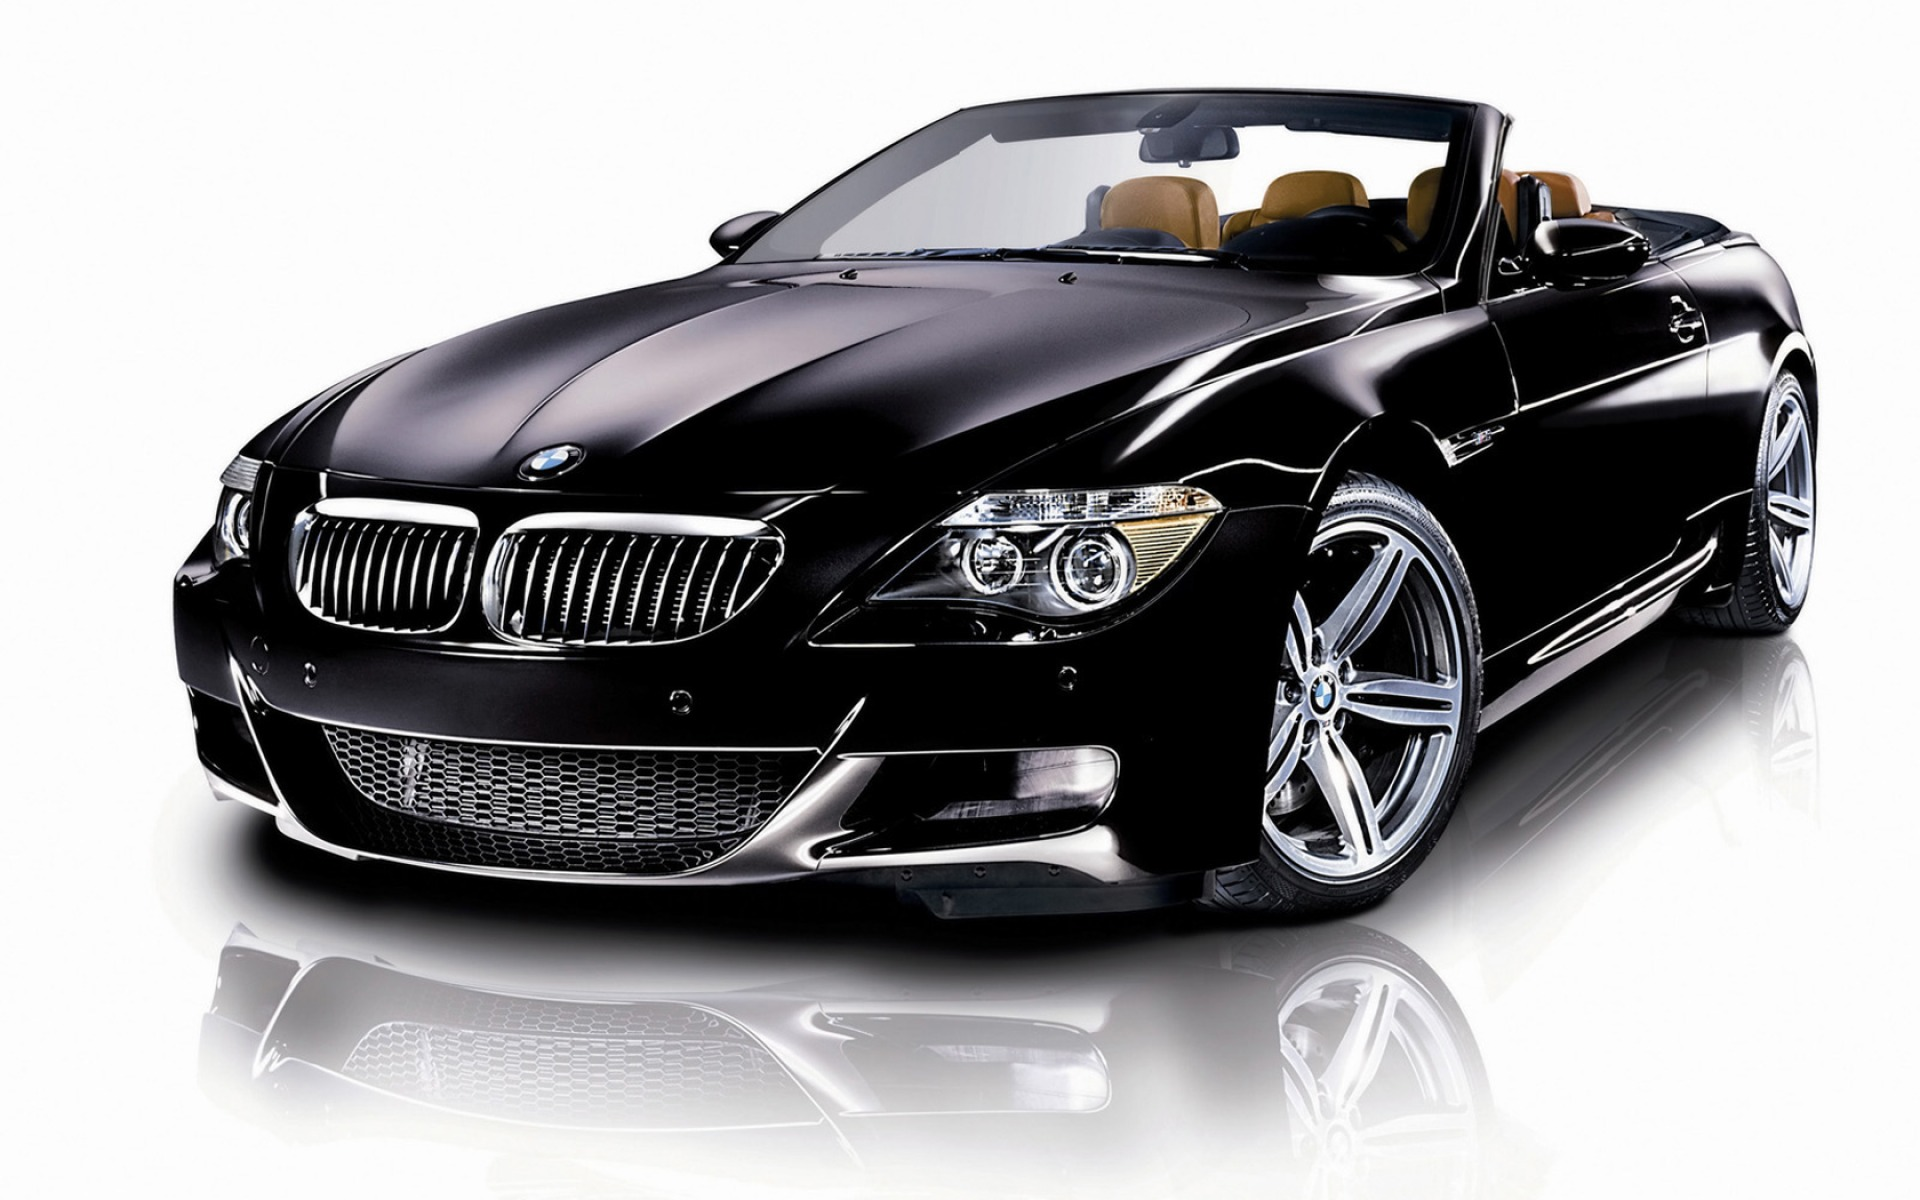 Ultrablogus  Pleasing Bmw Car Wallpaper Wallpapers For Free Download About   With Lovable Bmw M Convertible Wallpaper Bmw Cars With Breathtaking Ford Super Duty Interior Also Ford Fusion  Interior In Addition Subaru Outback  Interior And Volvo Xc Interior Parts As Well As  Ford Mustang Interior Additionally  Ford F  Interior From Allfreedownloadcom With Ultrablogus  Lovable Bmw Car Wallpaper Wallpapers For Free Download About   With Breathtaking Bmw M Convertible Wallpaper Bmw Cars And Pleasing Ford Super Duty Interior Also Ford Fusion  Interior In Addition Subaru Outback  Interior From Allfreedownloadcom